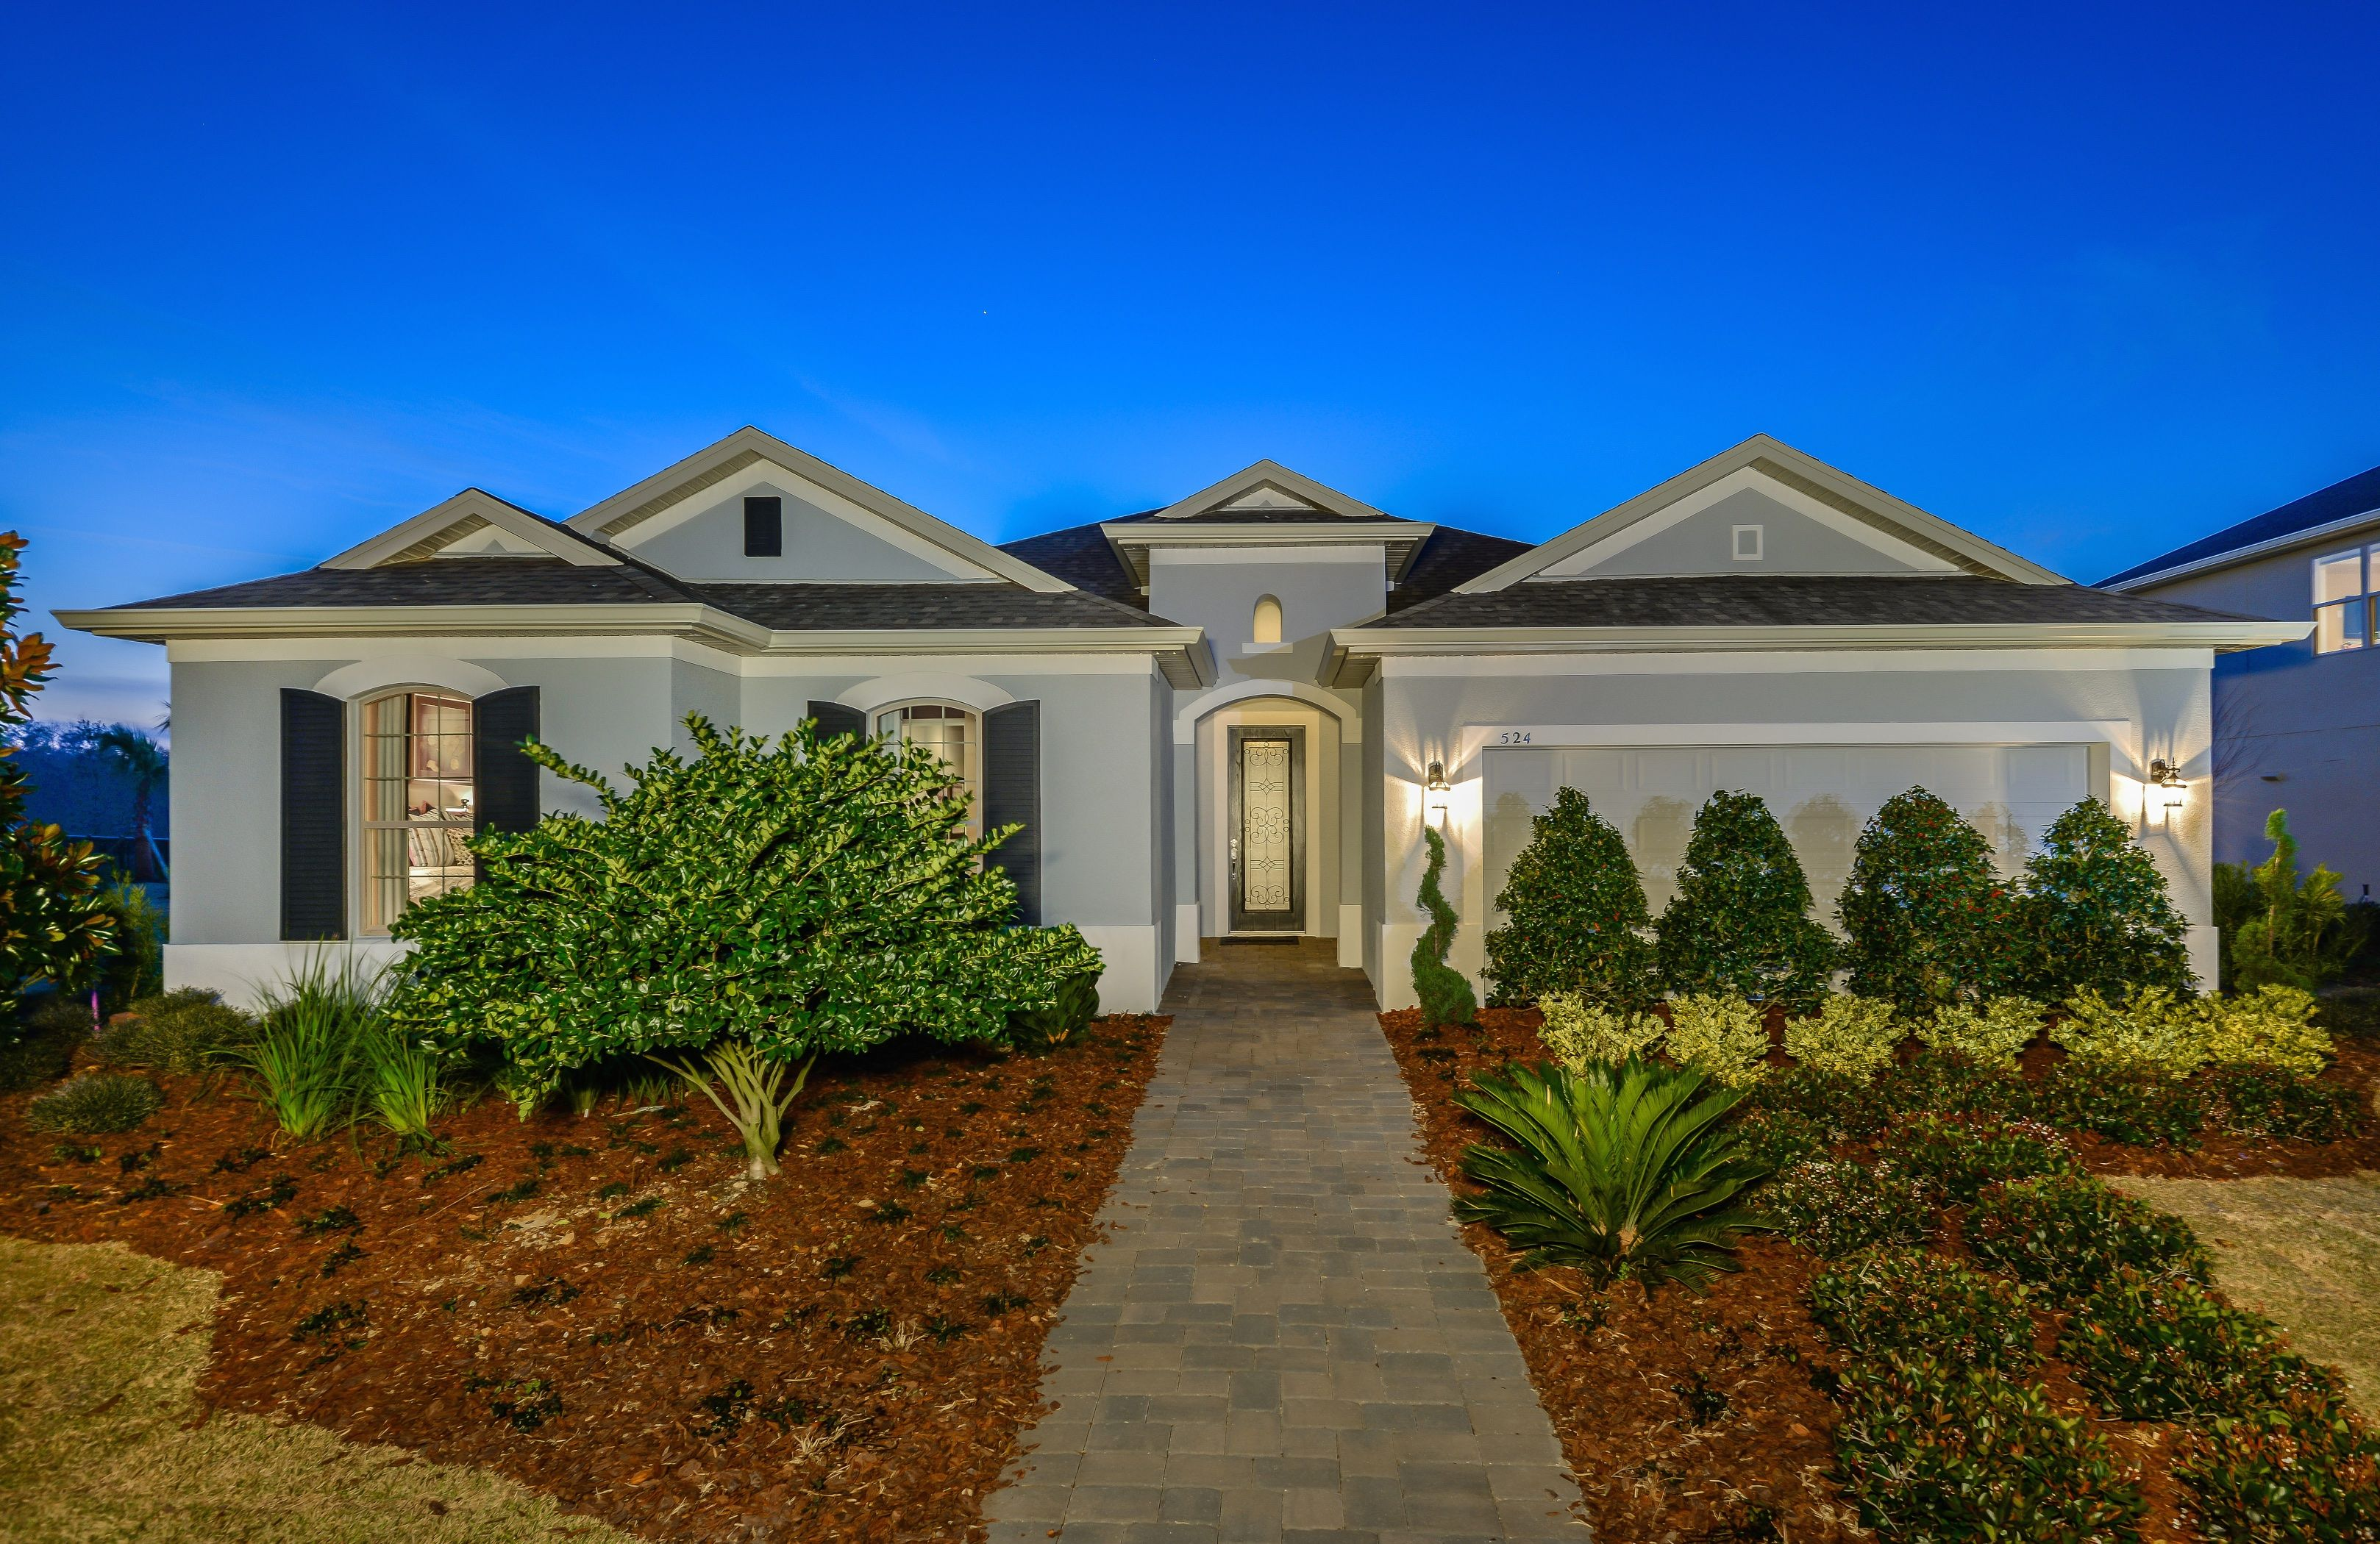 The Jackson model is the place you want to call home! The